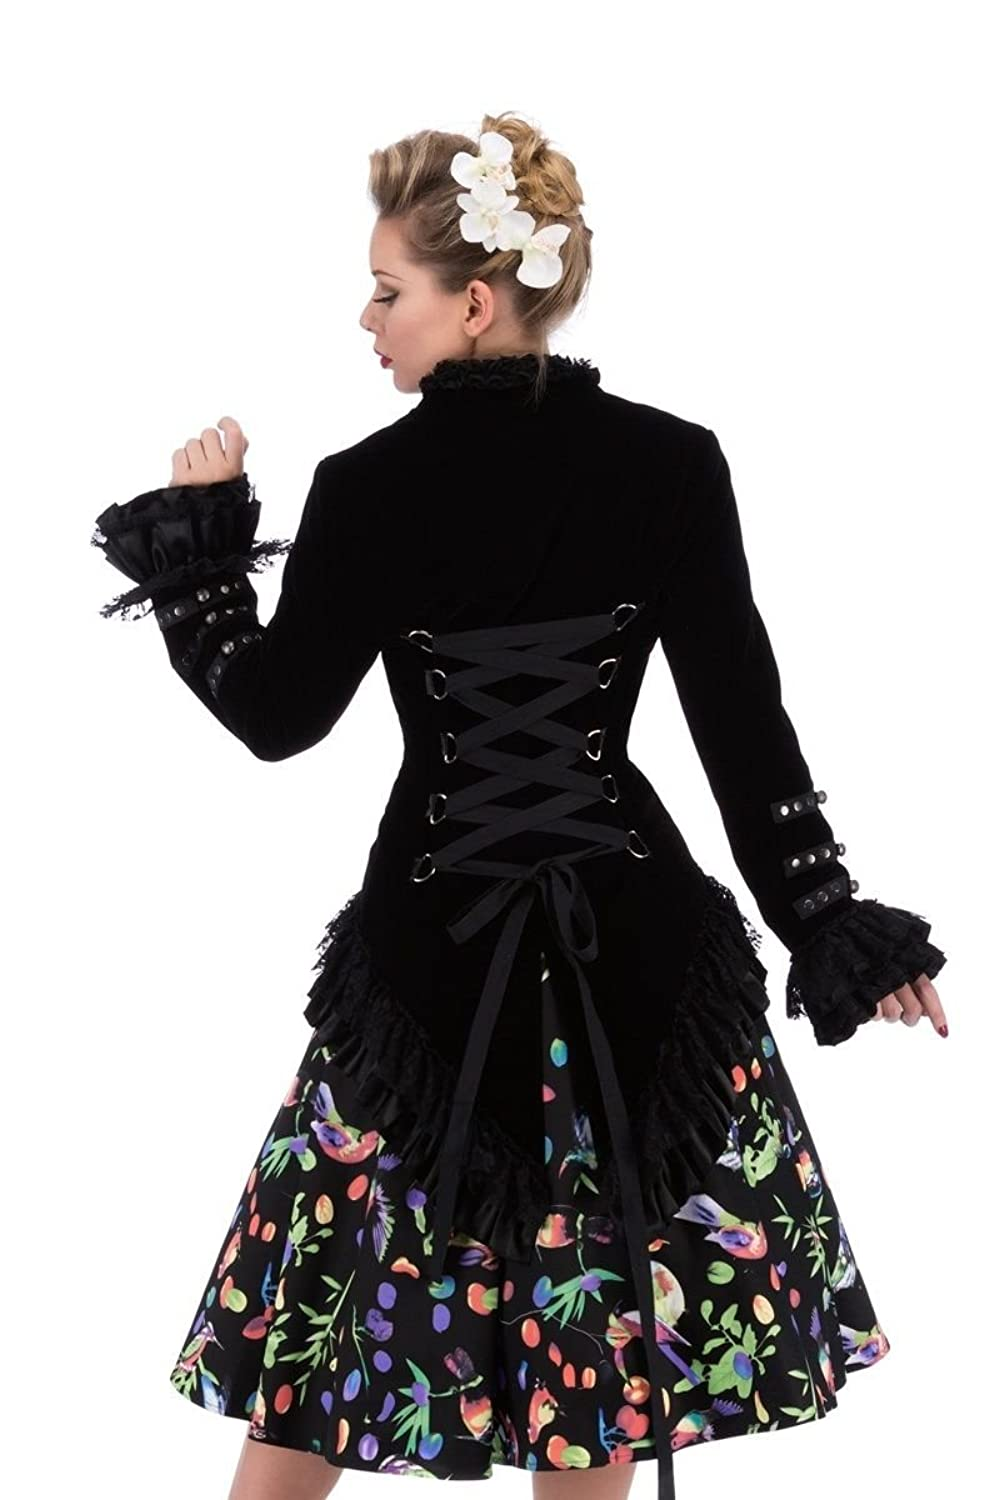 Victorian Clothing, Costumes & 1800s Fashion Hearts & Roses Womens Velvet Victorian Steampunk Tailcoat Corset Back £47.98 AT vintagedancer.com